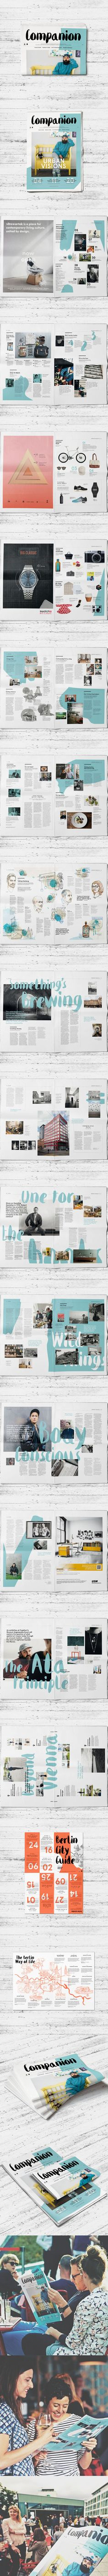 Companion Magazine #02 on Editorial Design Served